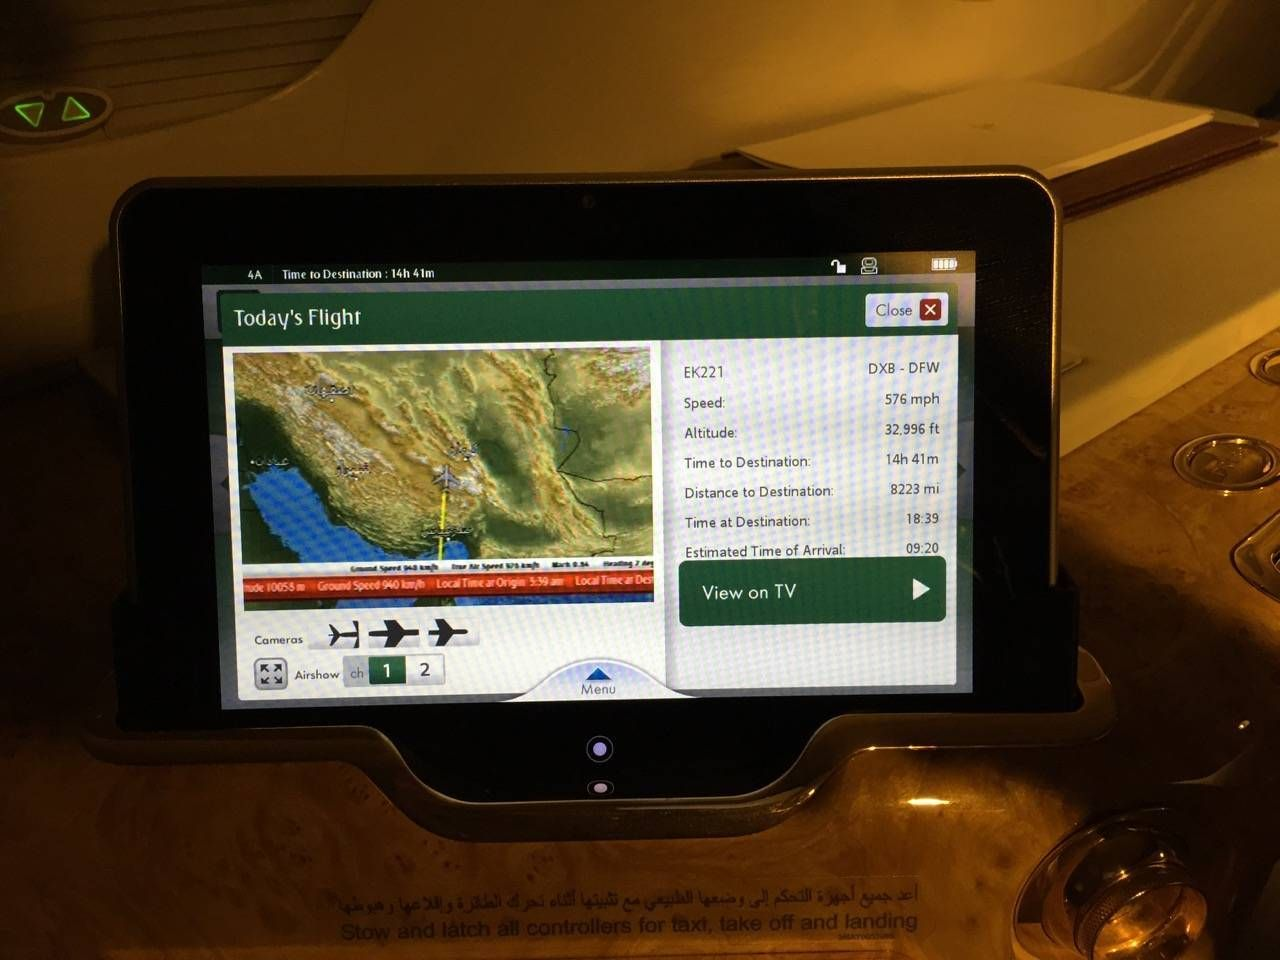 Emirates First Class A380 DXB-DFW-045